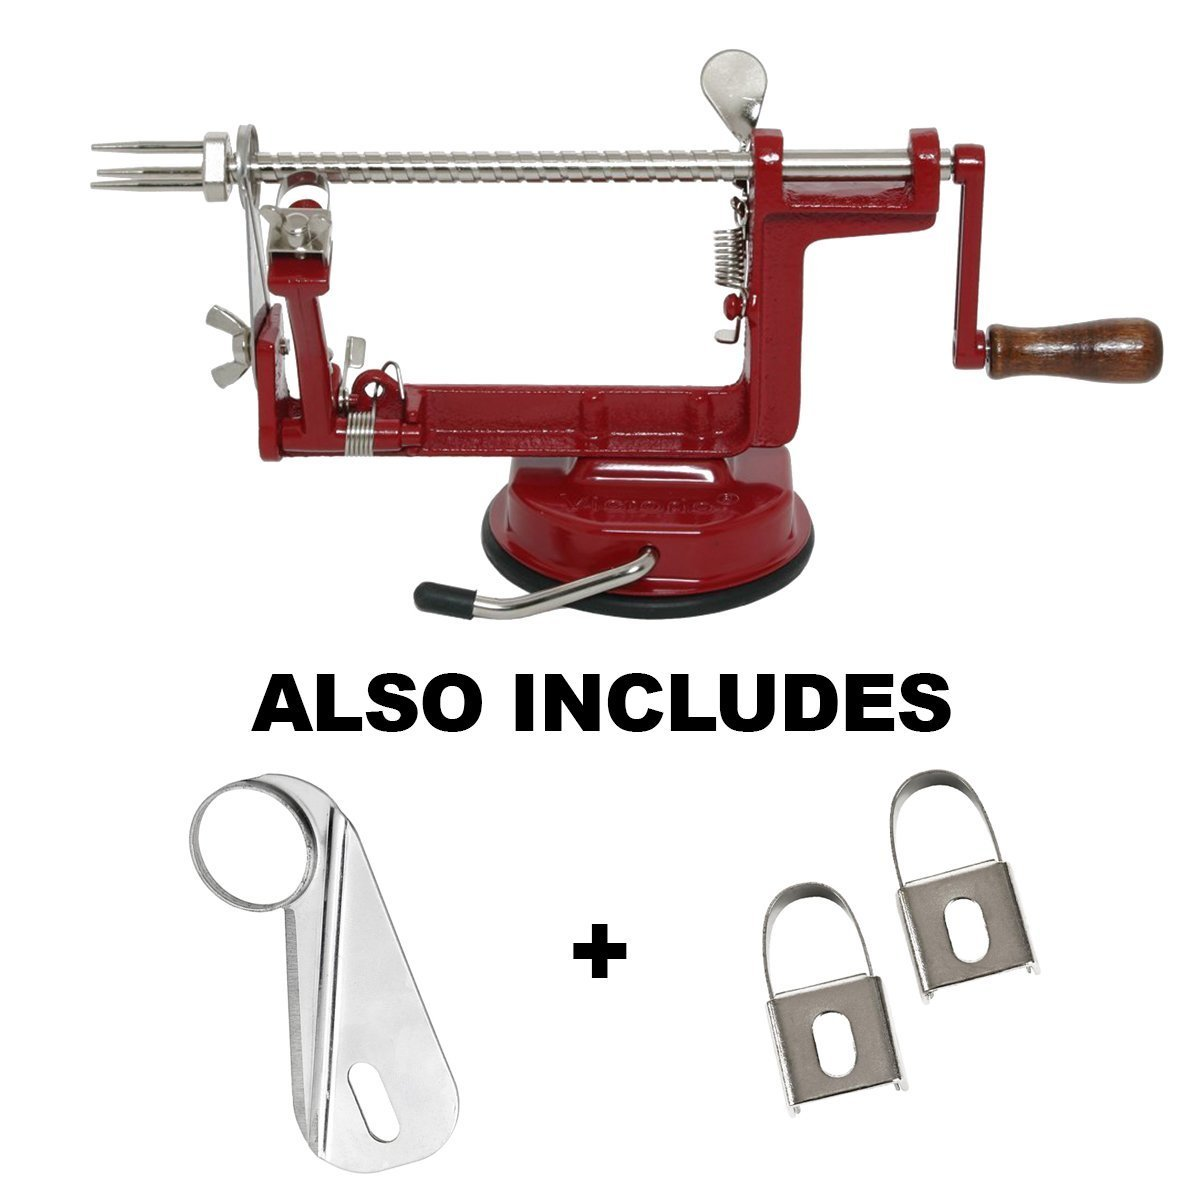 Johnny Apple Peeler with Suction Base VKP1010 by VICTORIO + (1) additional Coring &Slicing Blade VKP1010-2 + (2) additional Peeling Knifes VKP1010-1